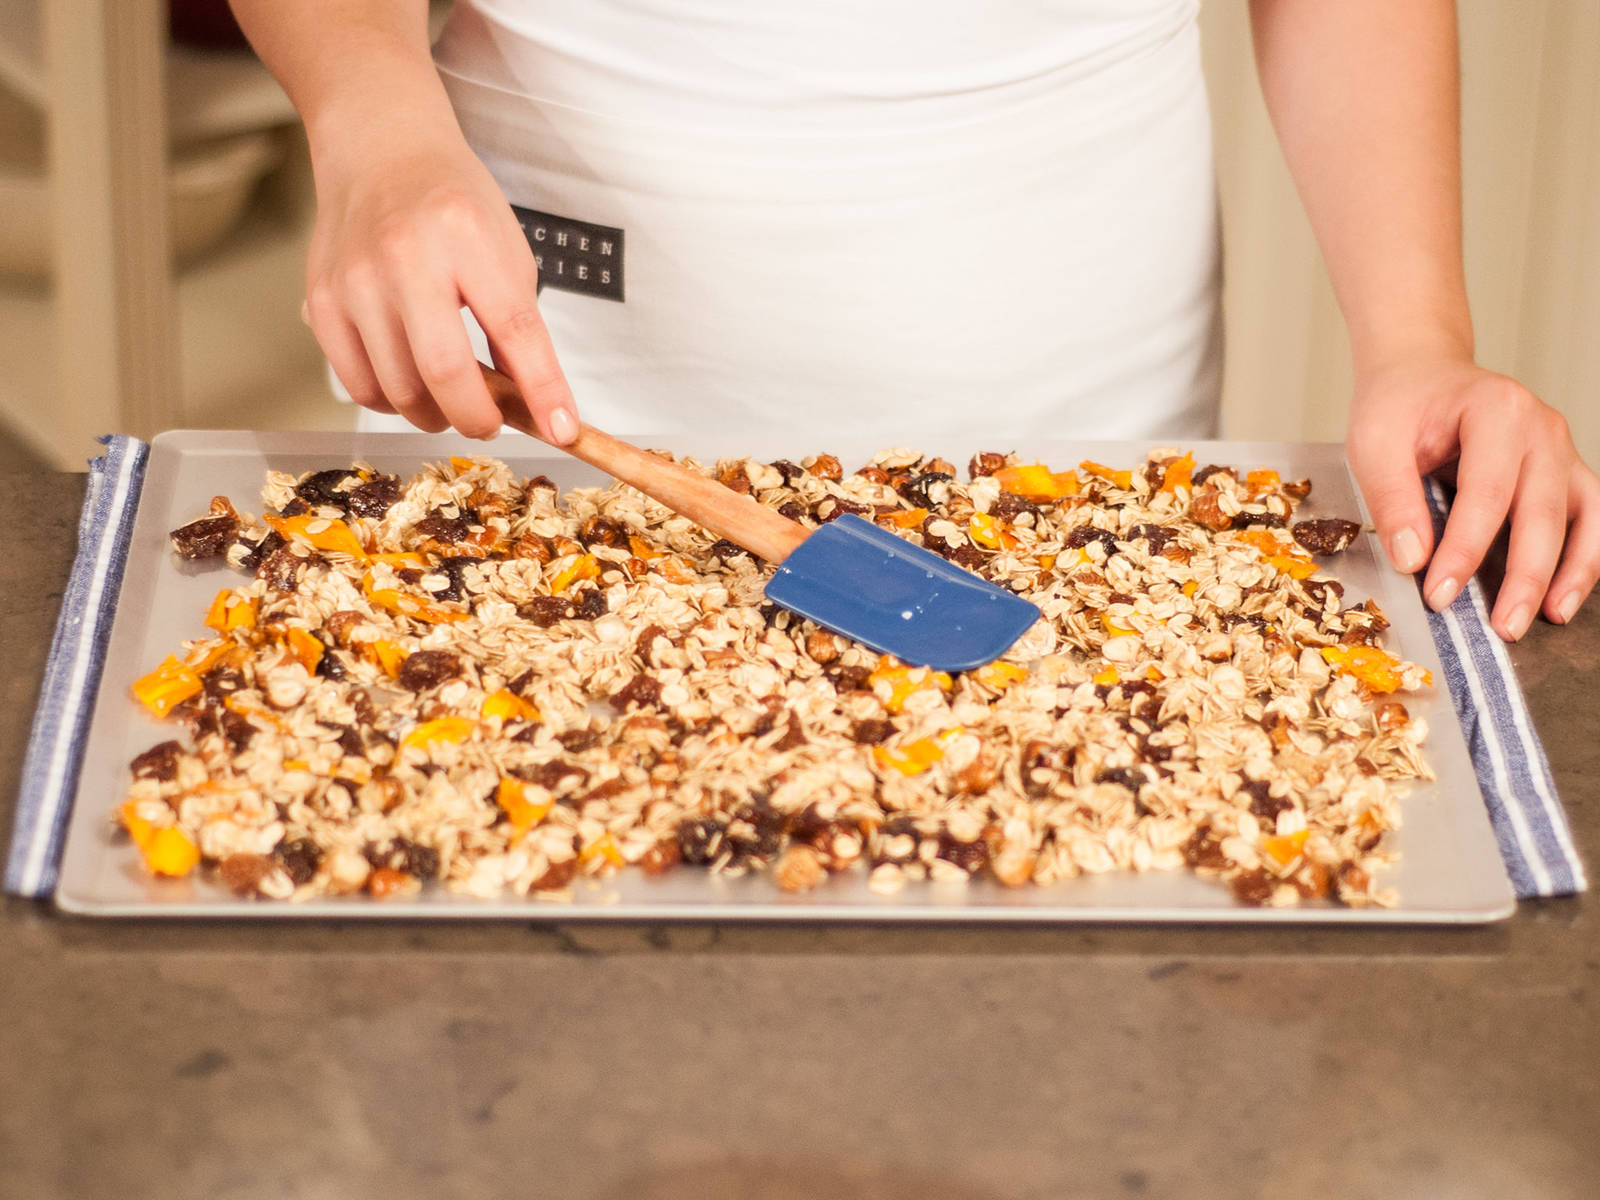 Spread granola evenly onto a baking sheet (lined if needed). Bake in a preheated oven at 180°C/°355°F for approx. 15 – 20 min. Allow to cool.